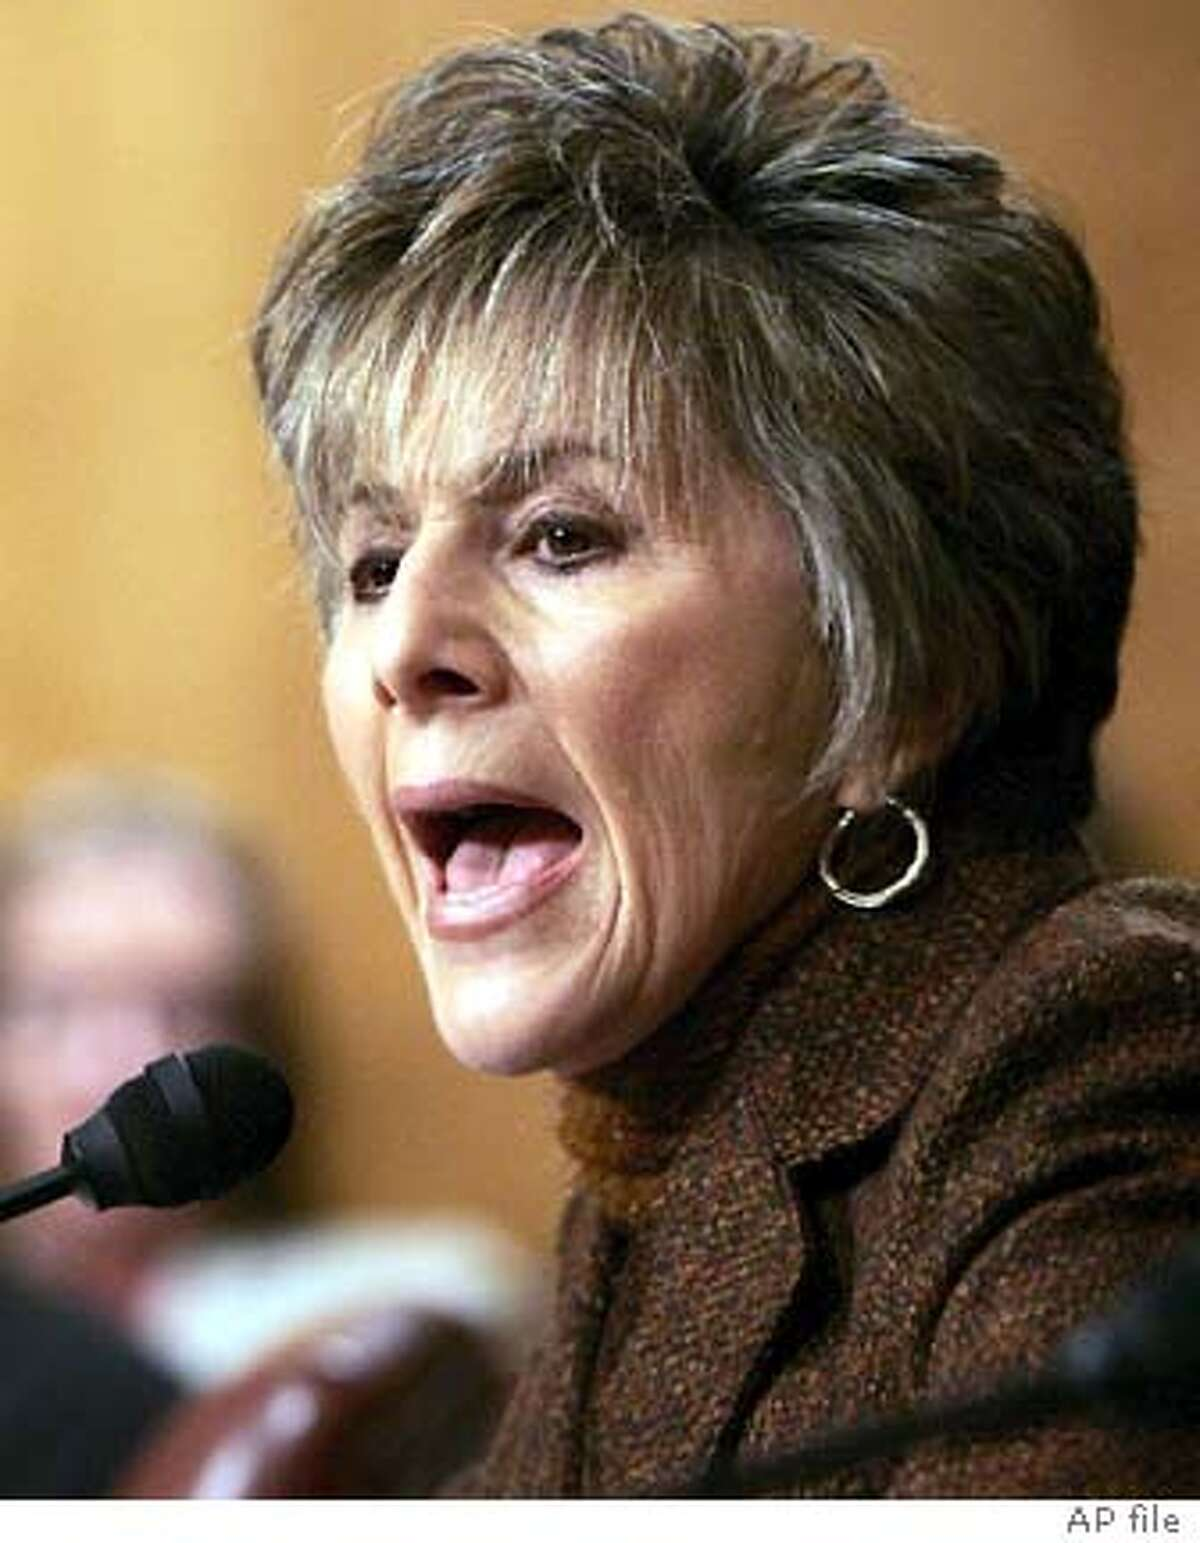 Sen. Barbara Boxer, D-Calif., makes a comment to former assistant Secretary of State for Intelligence and Research Carl W. Ford Jr., (not in picture) as he testifies before the Senate Foreign Relations Committee on the nomination of John Bolton as ambassador to the U.N on Capitol Hill, Tuesday, April 12, 2005. Ford, a former chief of the State Department's bureau of intelligence and research castigated Bolton on Tuesday as a 'kiss-up, kick-down sort of guy' who abused analysts who disagreed with his views of Cuba's weapons capabilities. Seated in back center is Sen. Christopher Dodd, D-Conn. (AP Photo/Manuel Balce Ceneta) Boxer